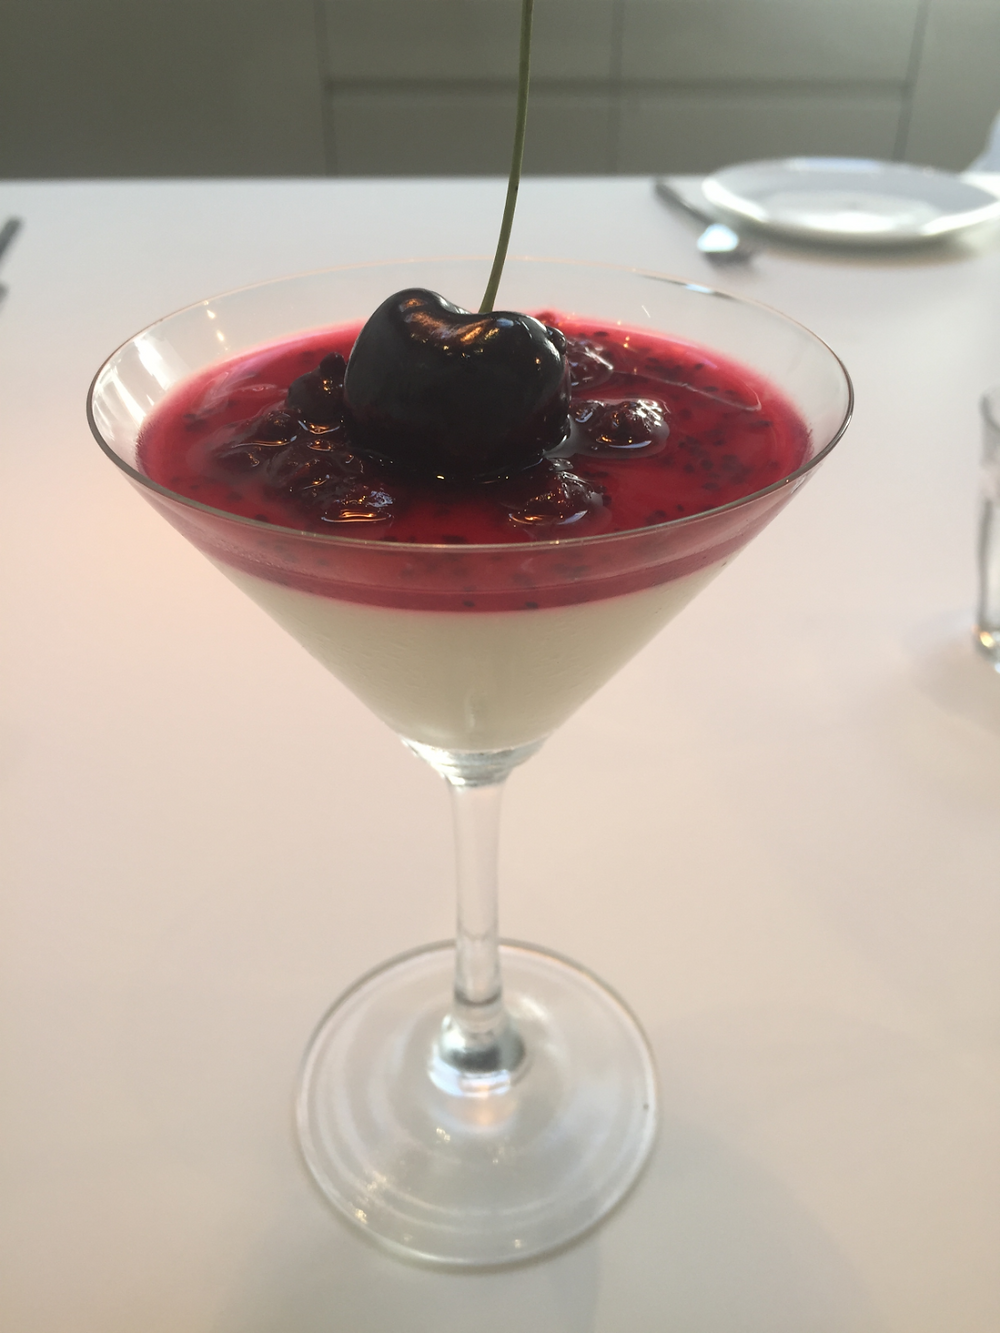 Buttermilk dessert with blackcurrant and cherry topping